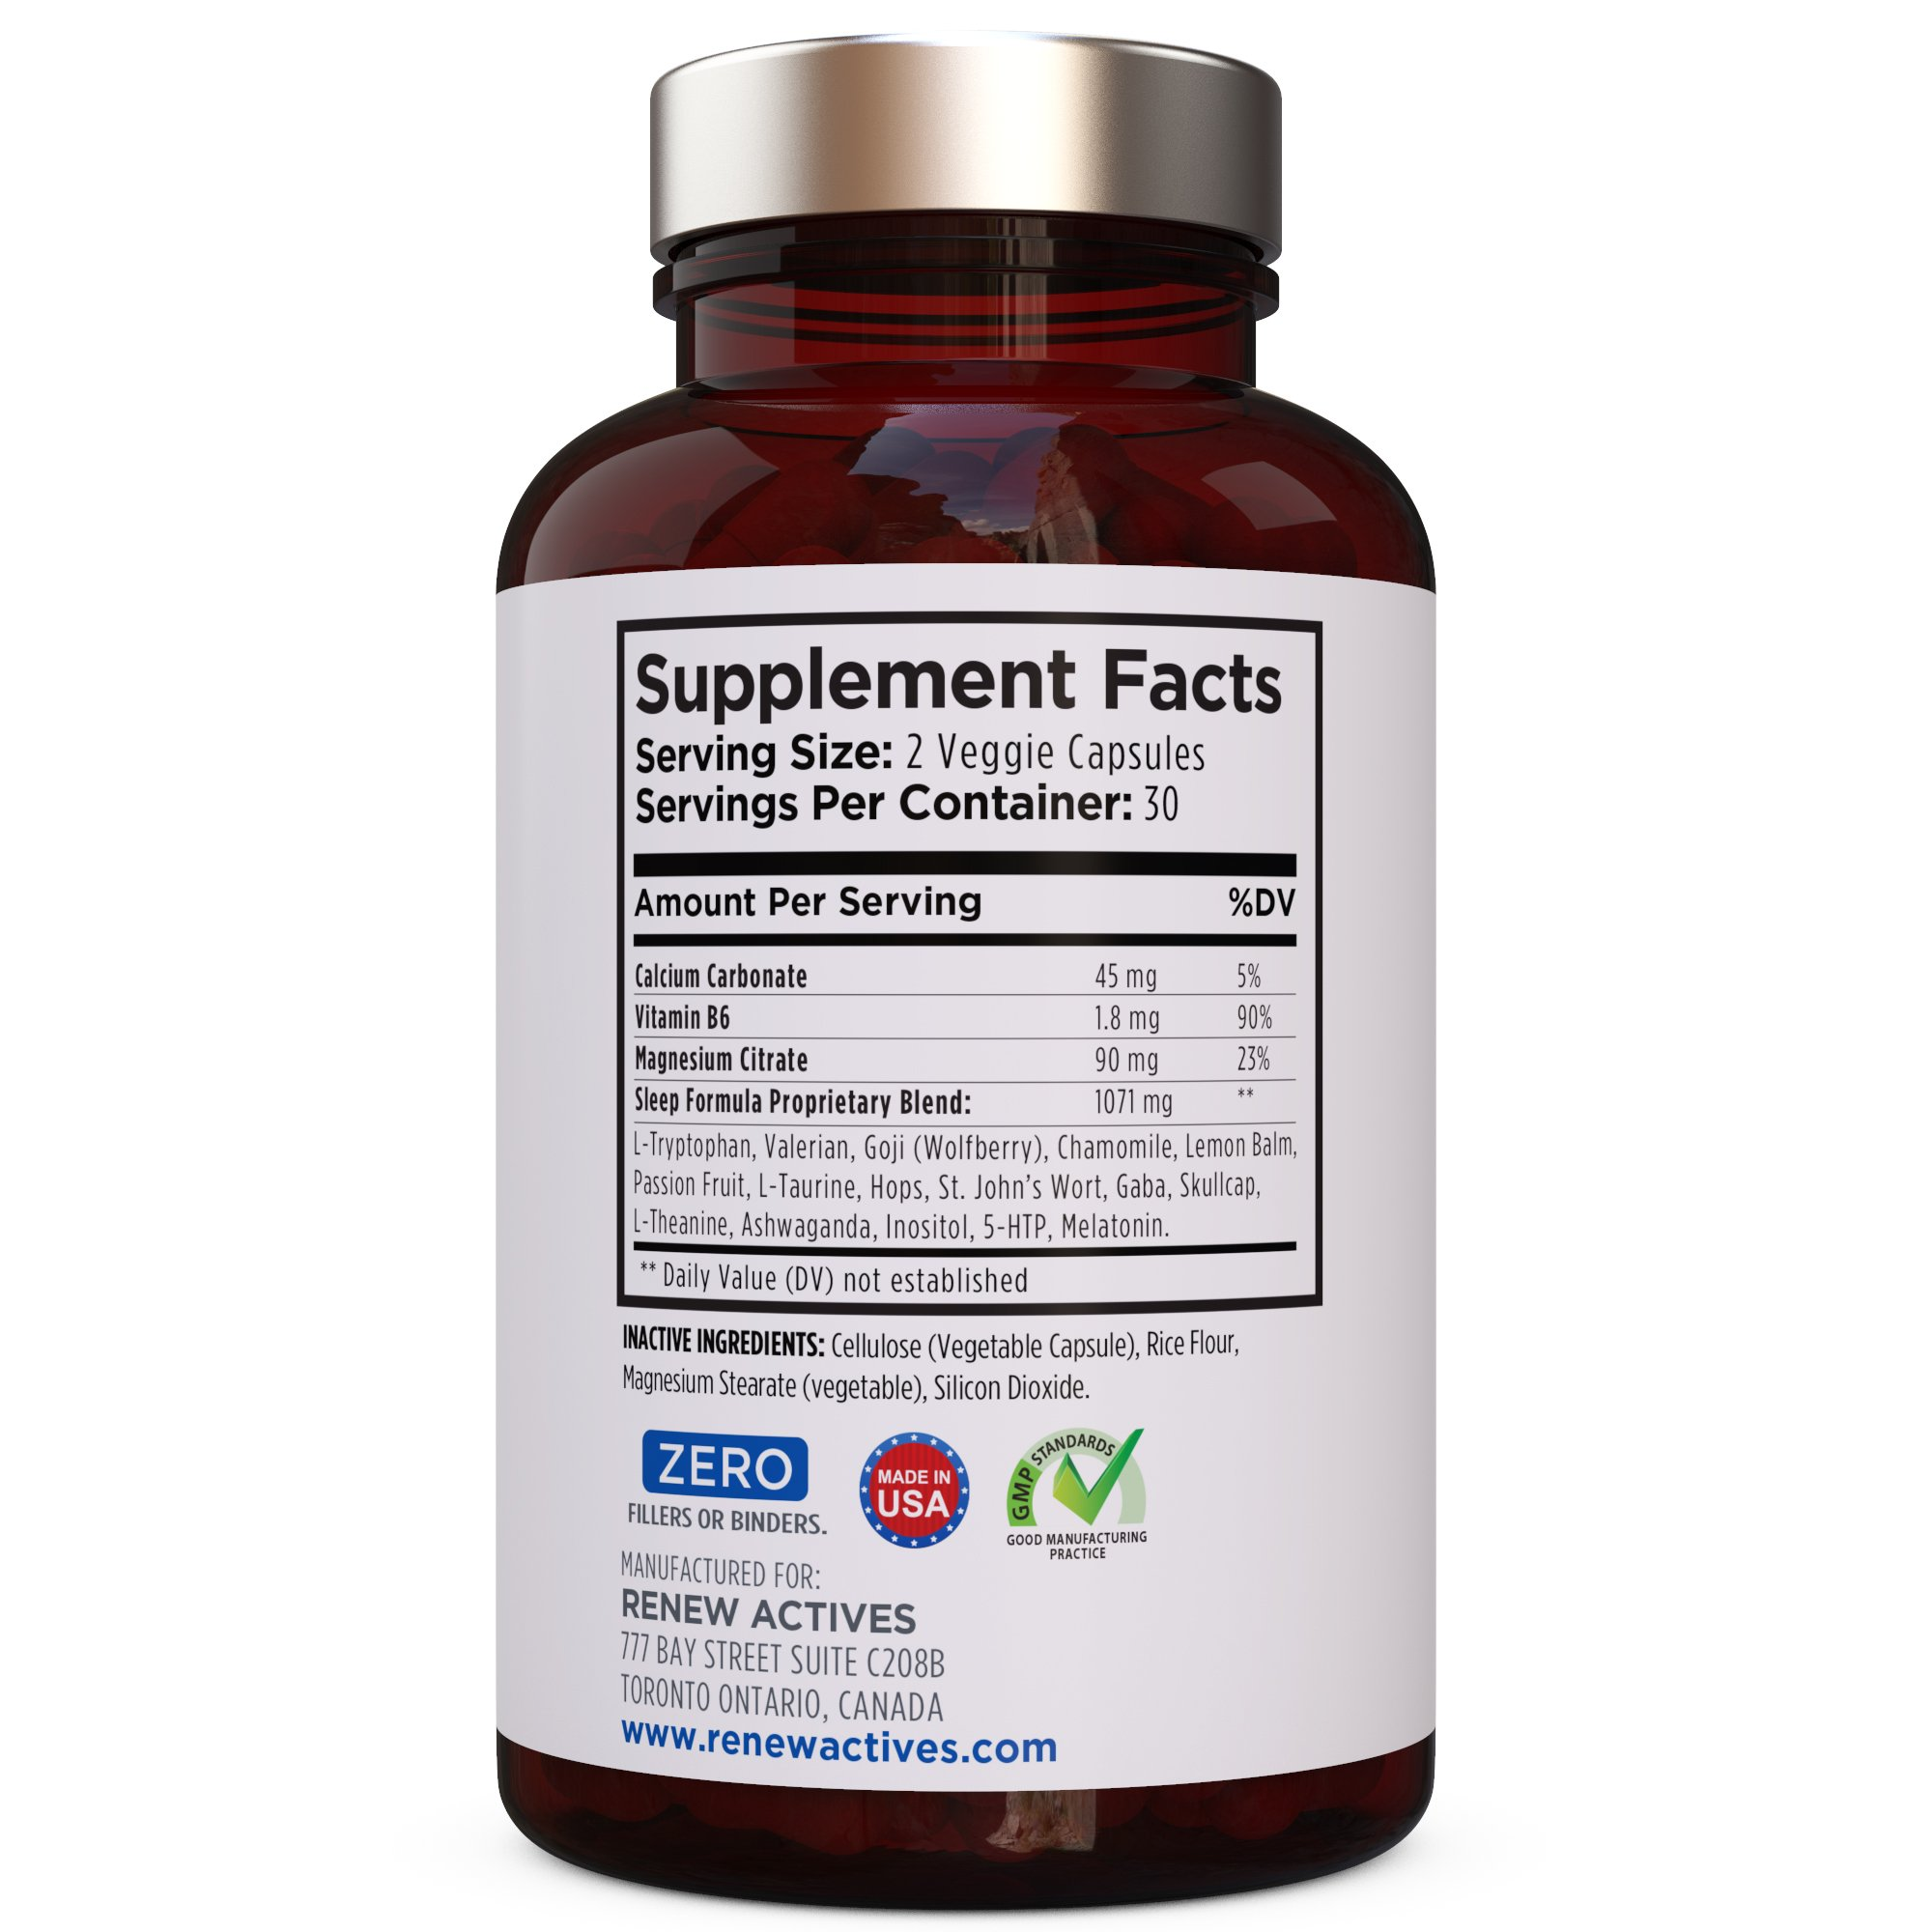 All Natural Sleep Aid Supplement. Non-Habit Forming Sleeping Pill. Our Guarantee is A Deeper, Longer & Restful Sleep! Starting Tonight Get the Peaceful & Natural Sleep You Deserve! by Renew Actives (Image #8)